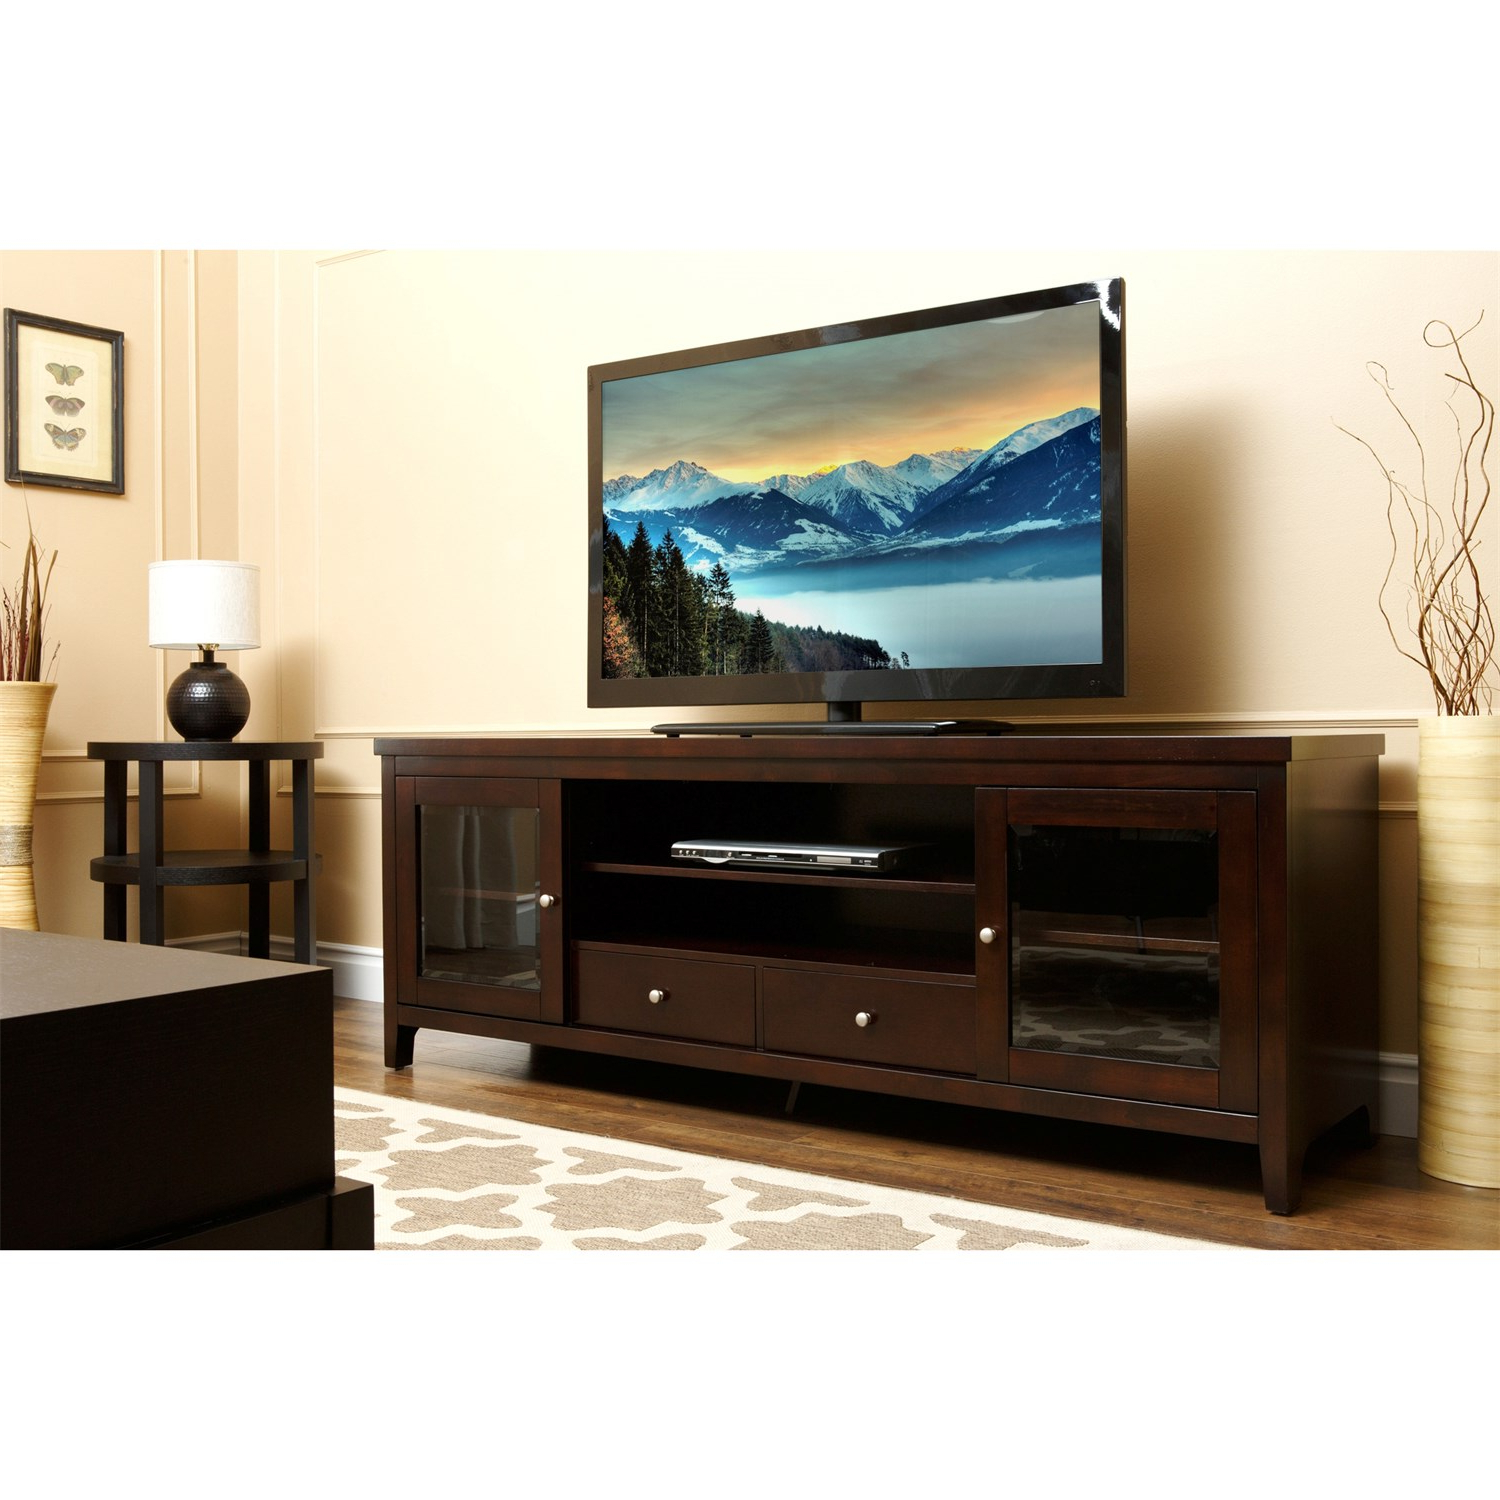 Costco Electric Heater Fireplace Tv Stand Walmart Stands Big Lots Regarding Oxford 70 Inch Tv Stands (View 15 of 20)